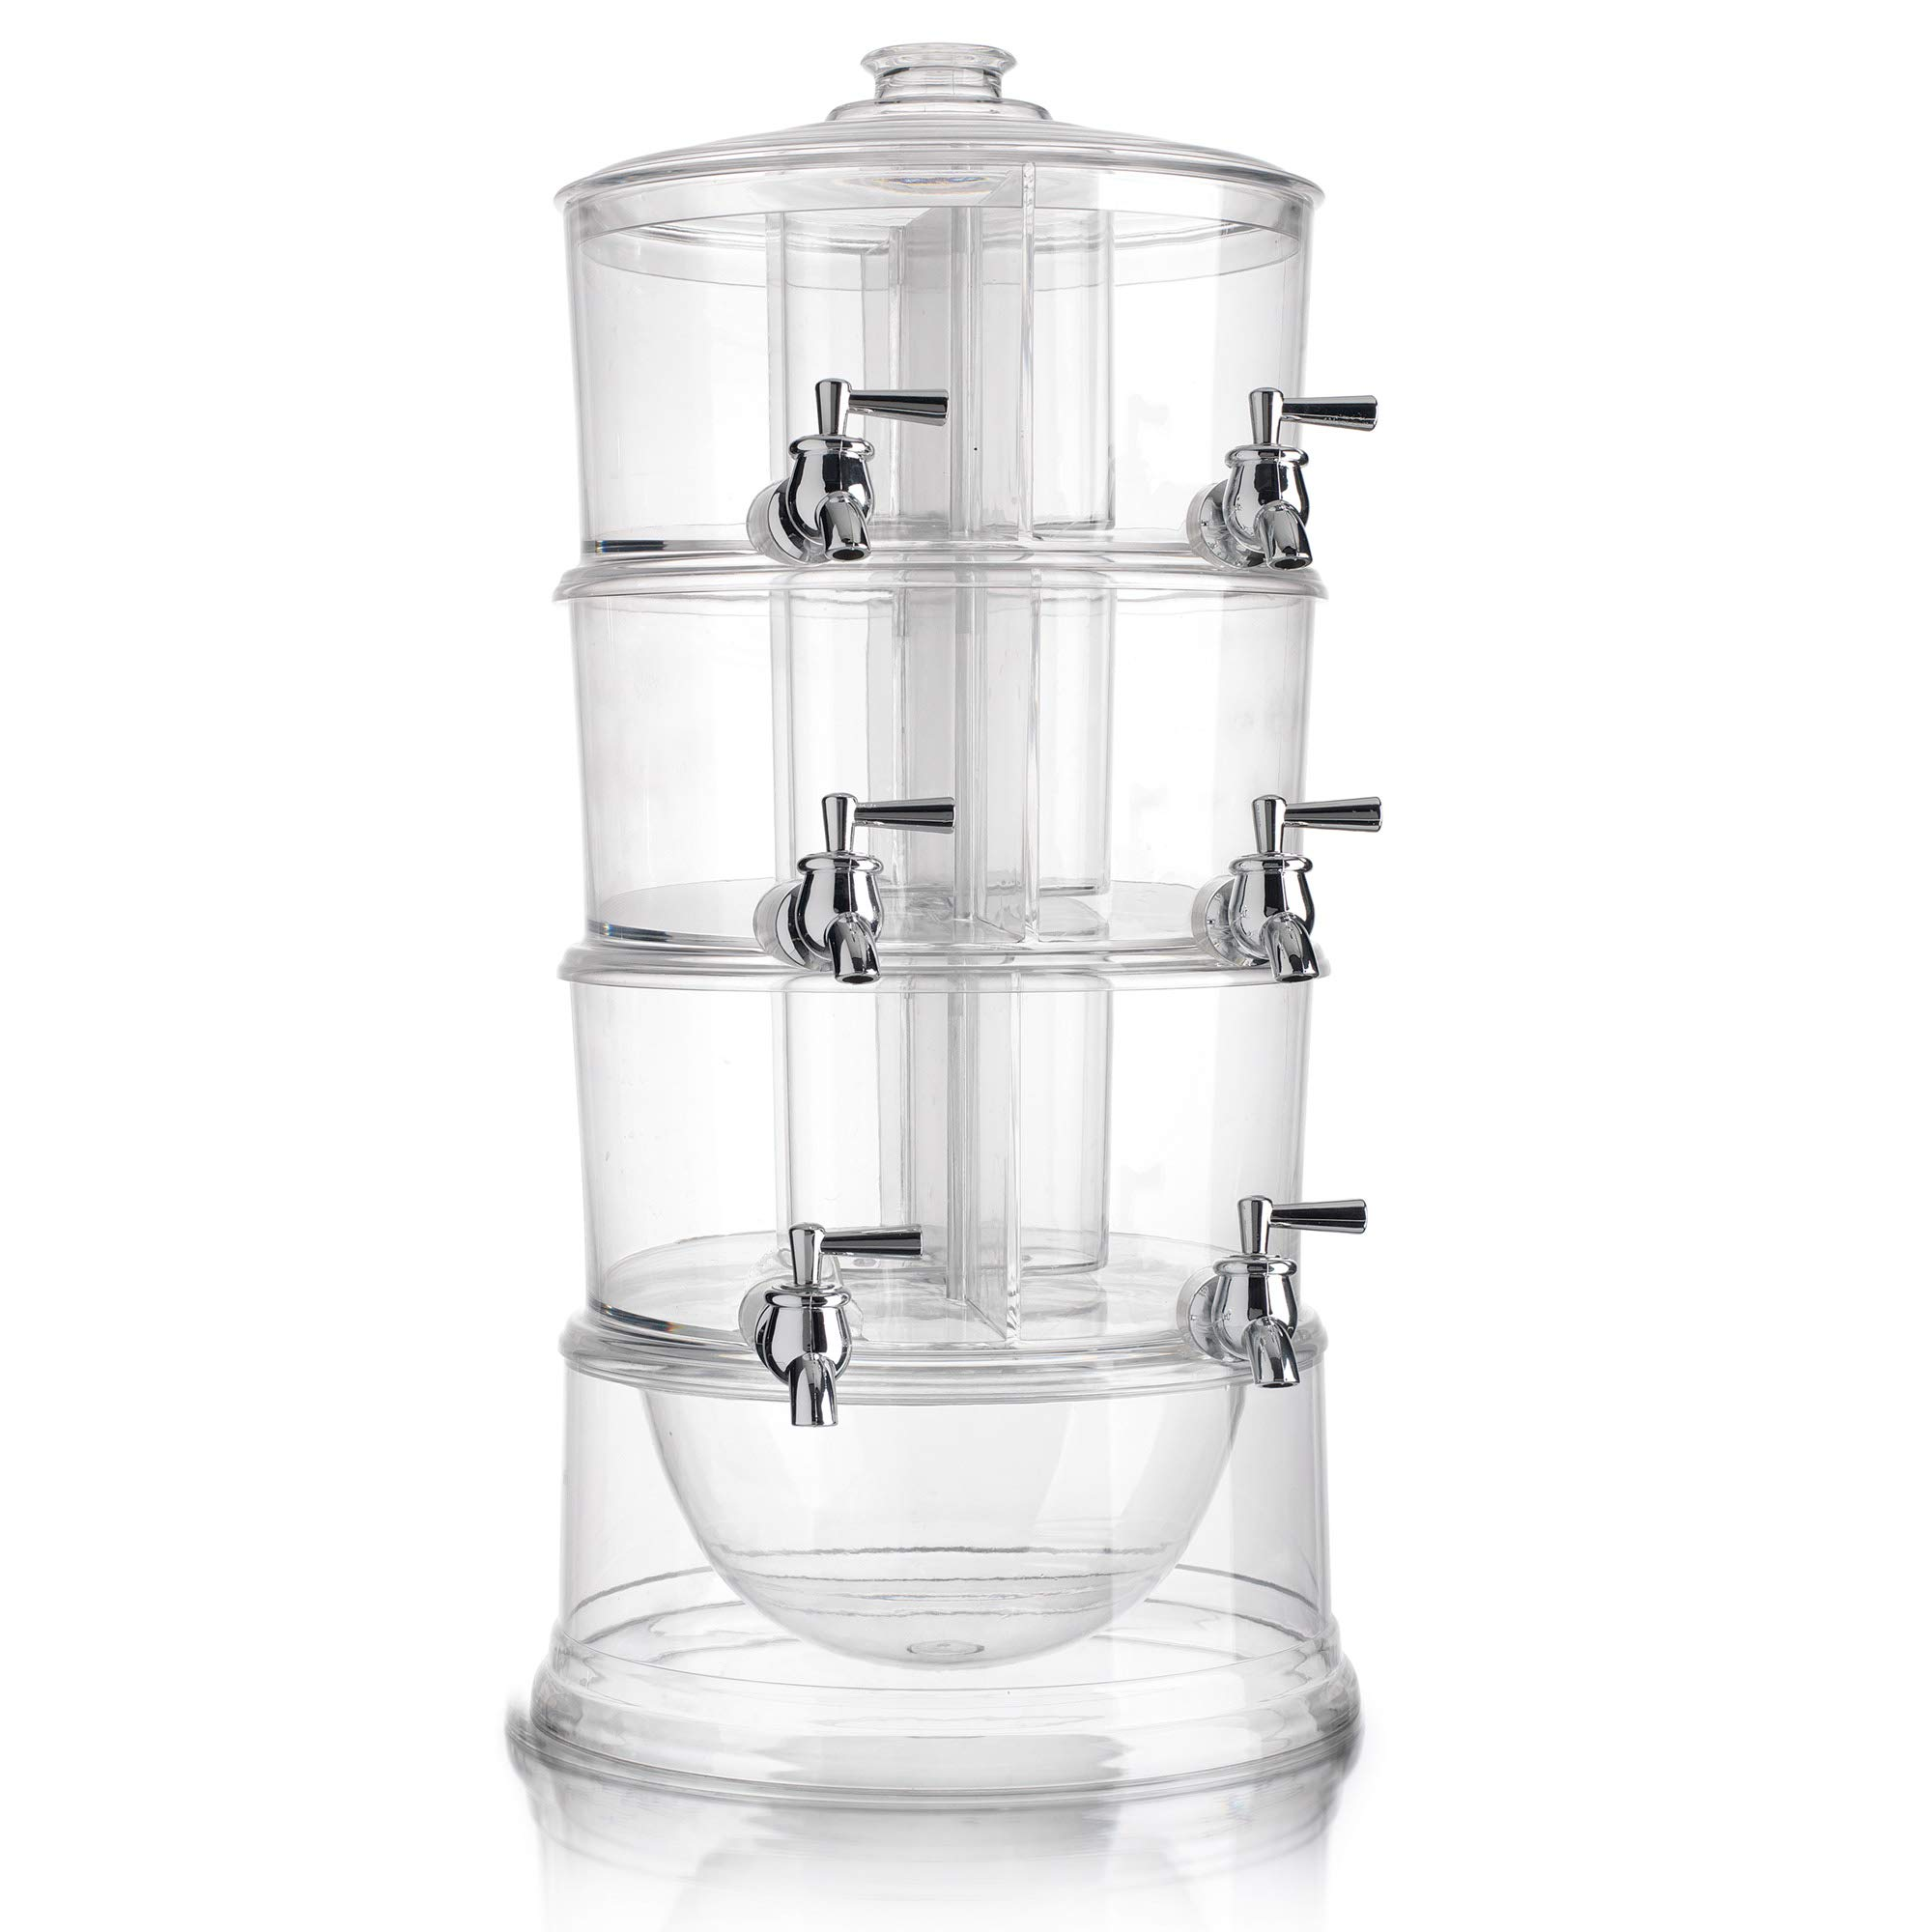 (D) Acrylic S/6 Stackable 1.5Gal Beverage Dispensers with Ice Chilling by GIFTS PLAZA